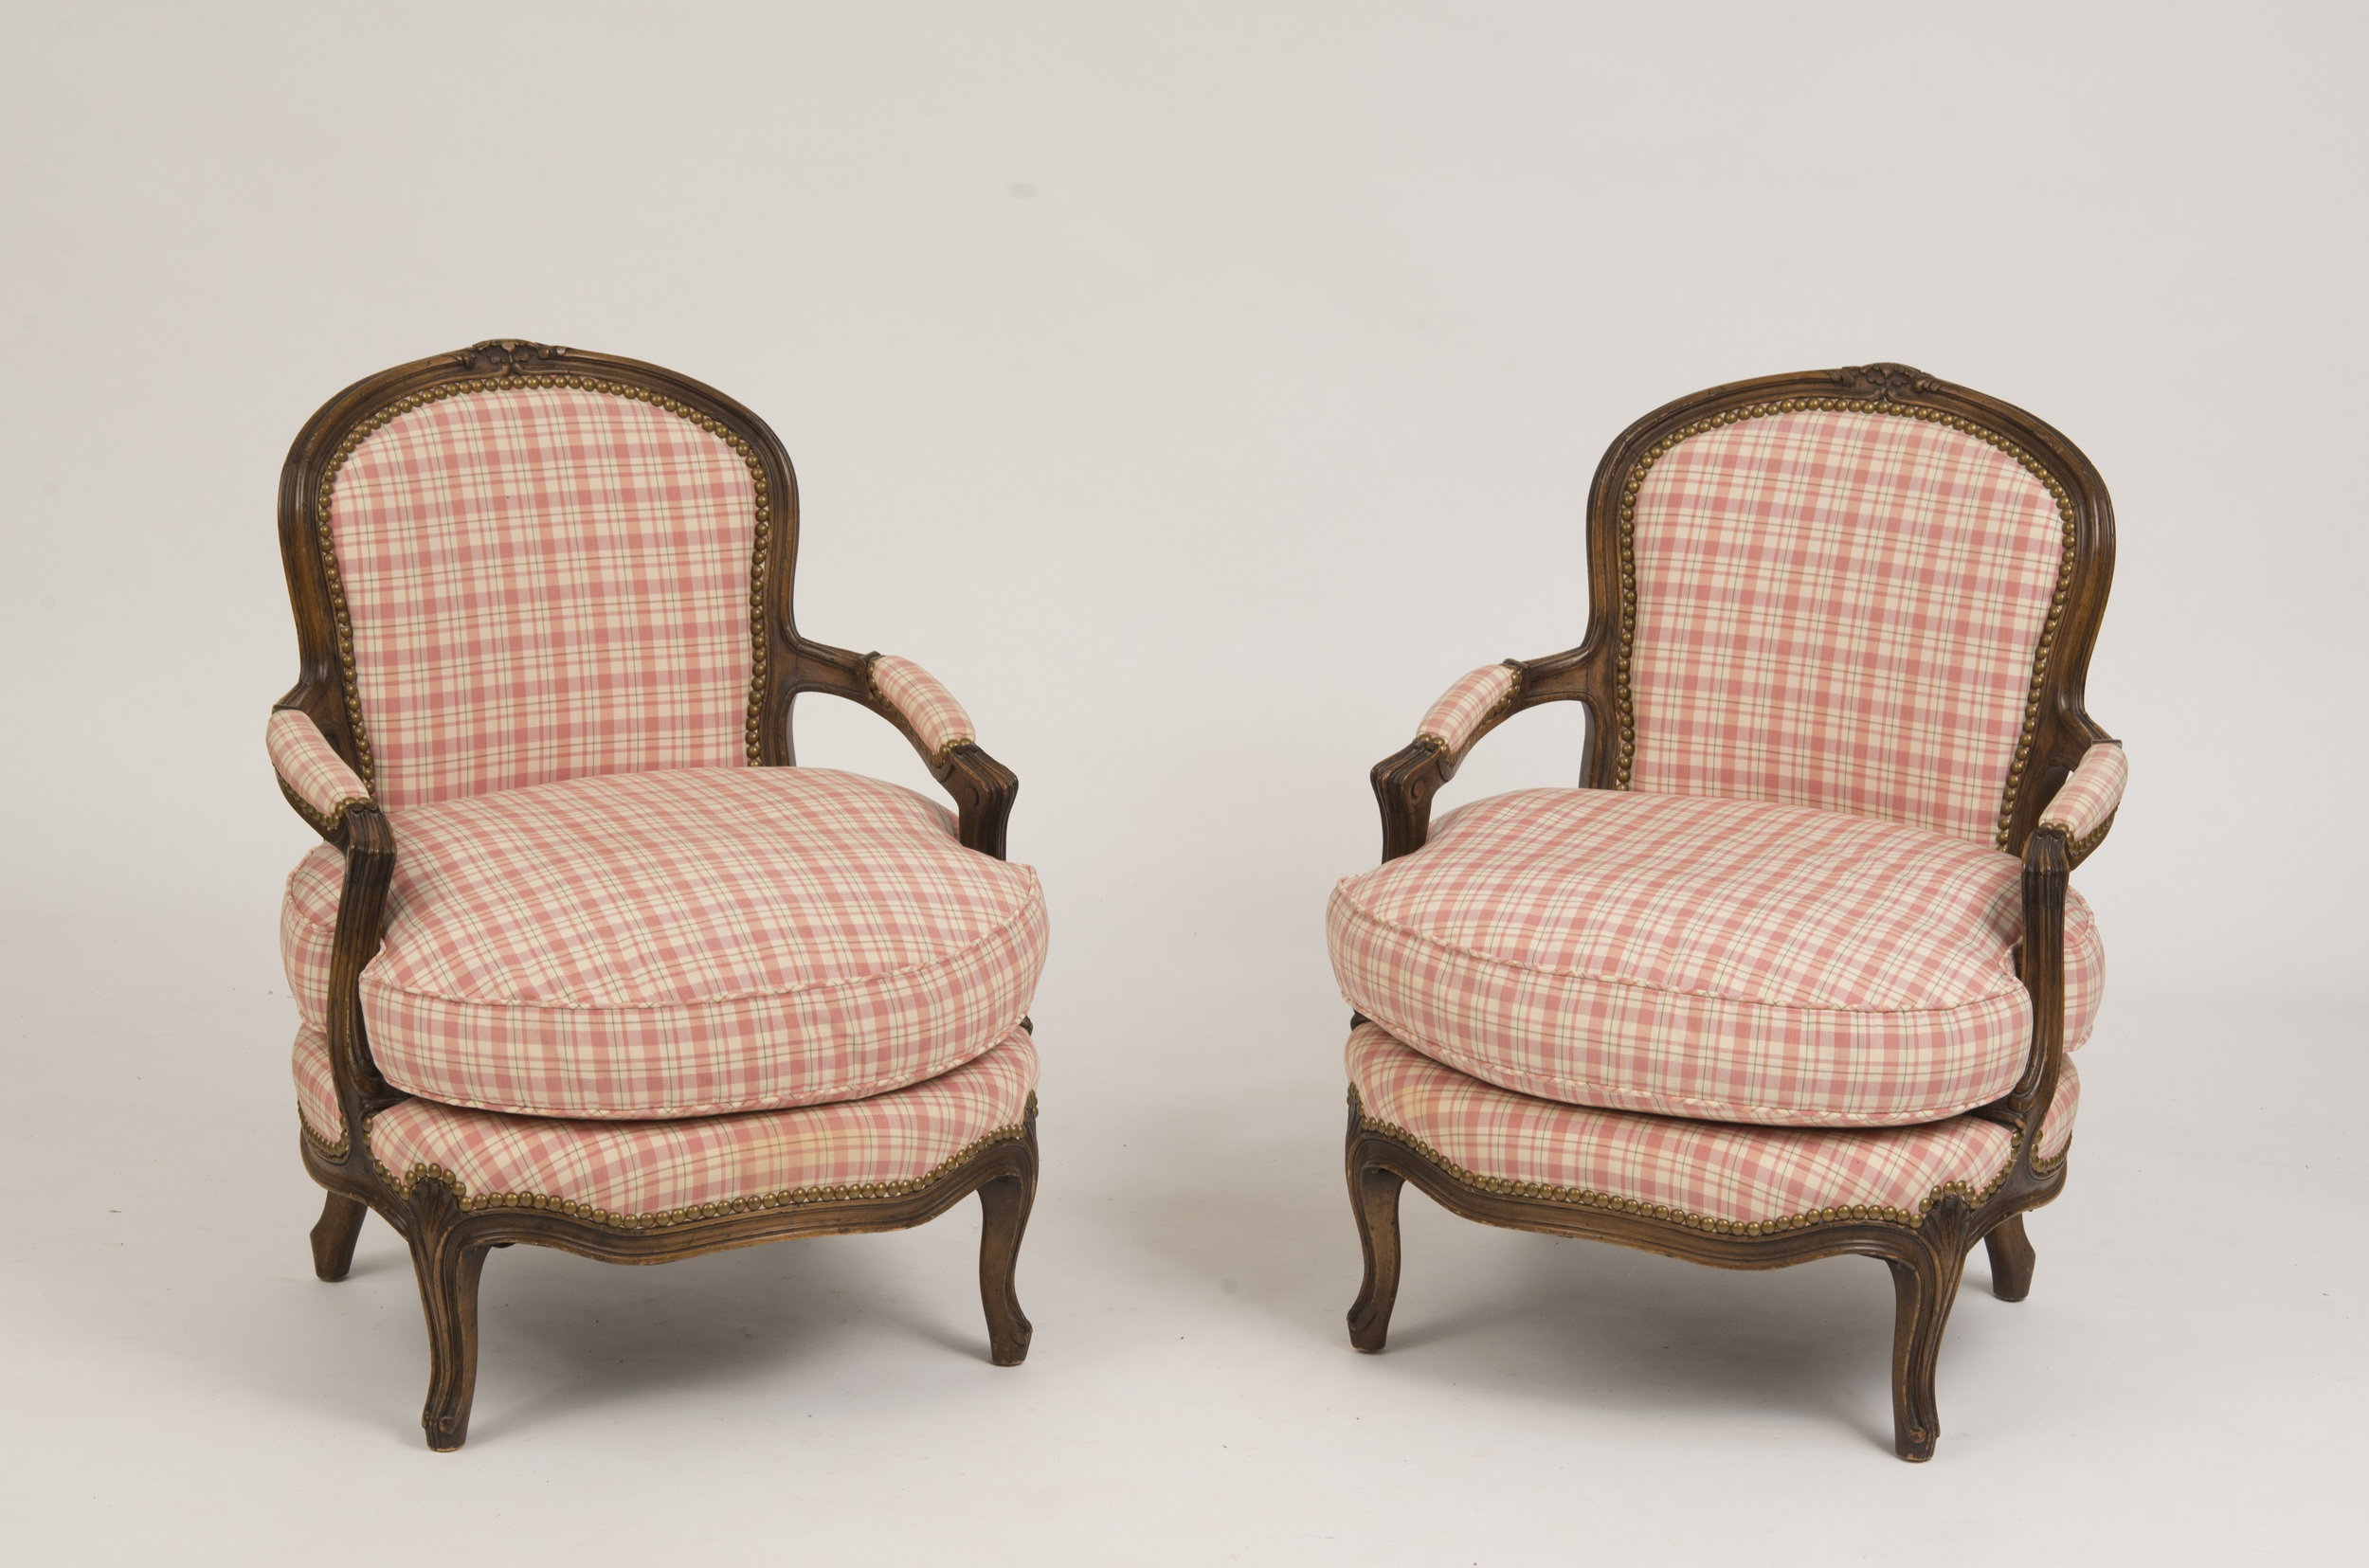 Fauteuil En Cabriolet Pair Of Louis Xv Style Carved Beechwood Fauteuils En Cabriolet